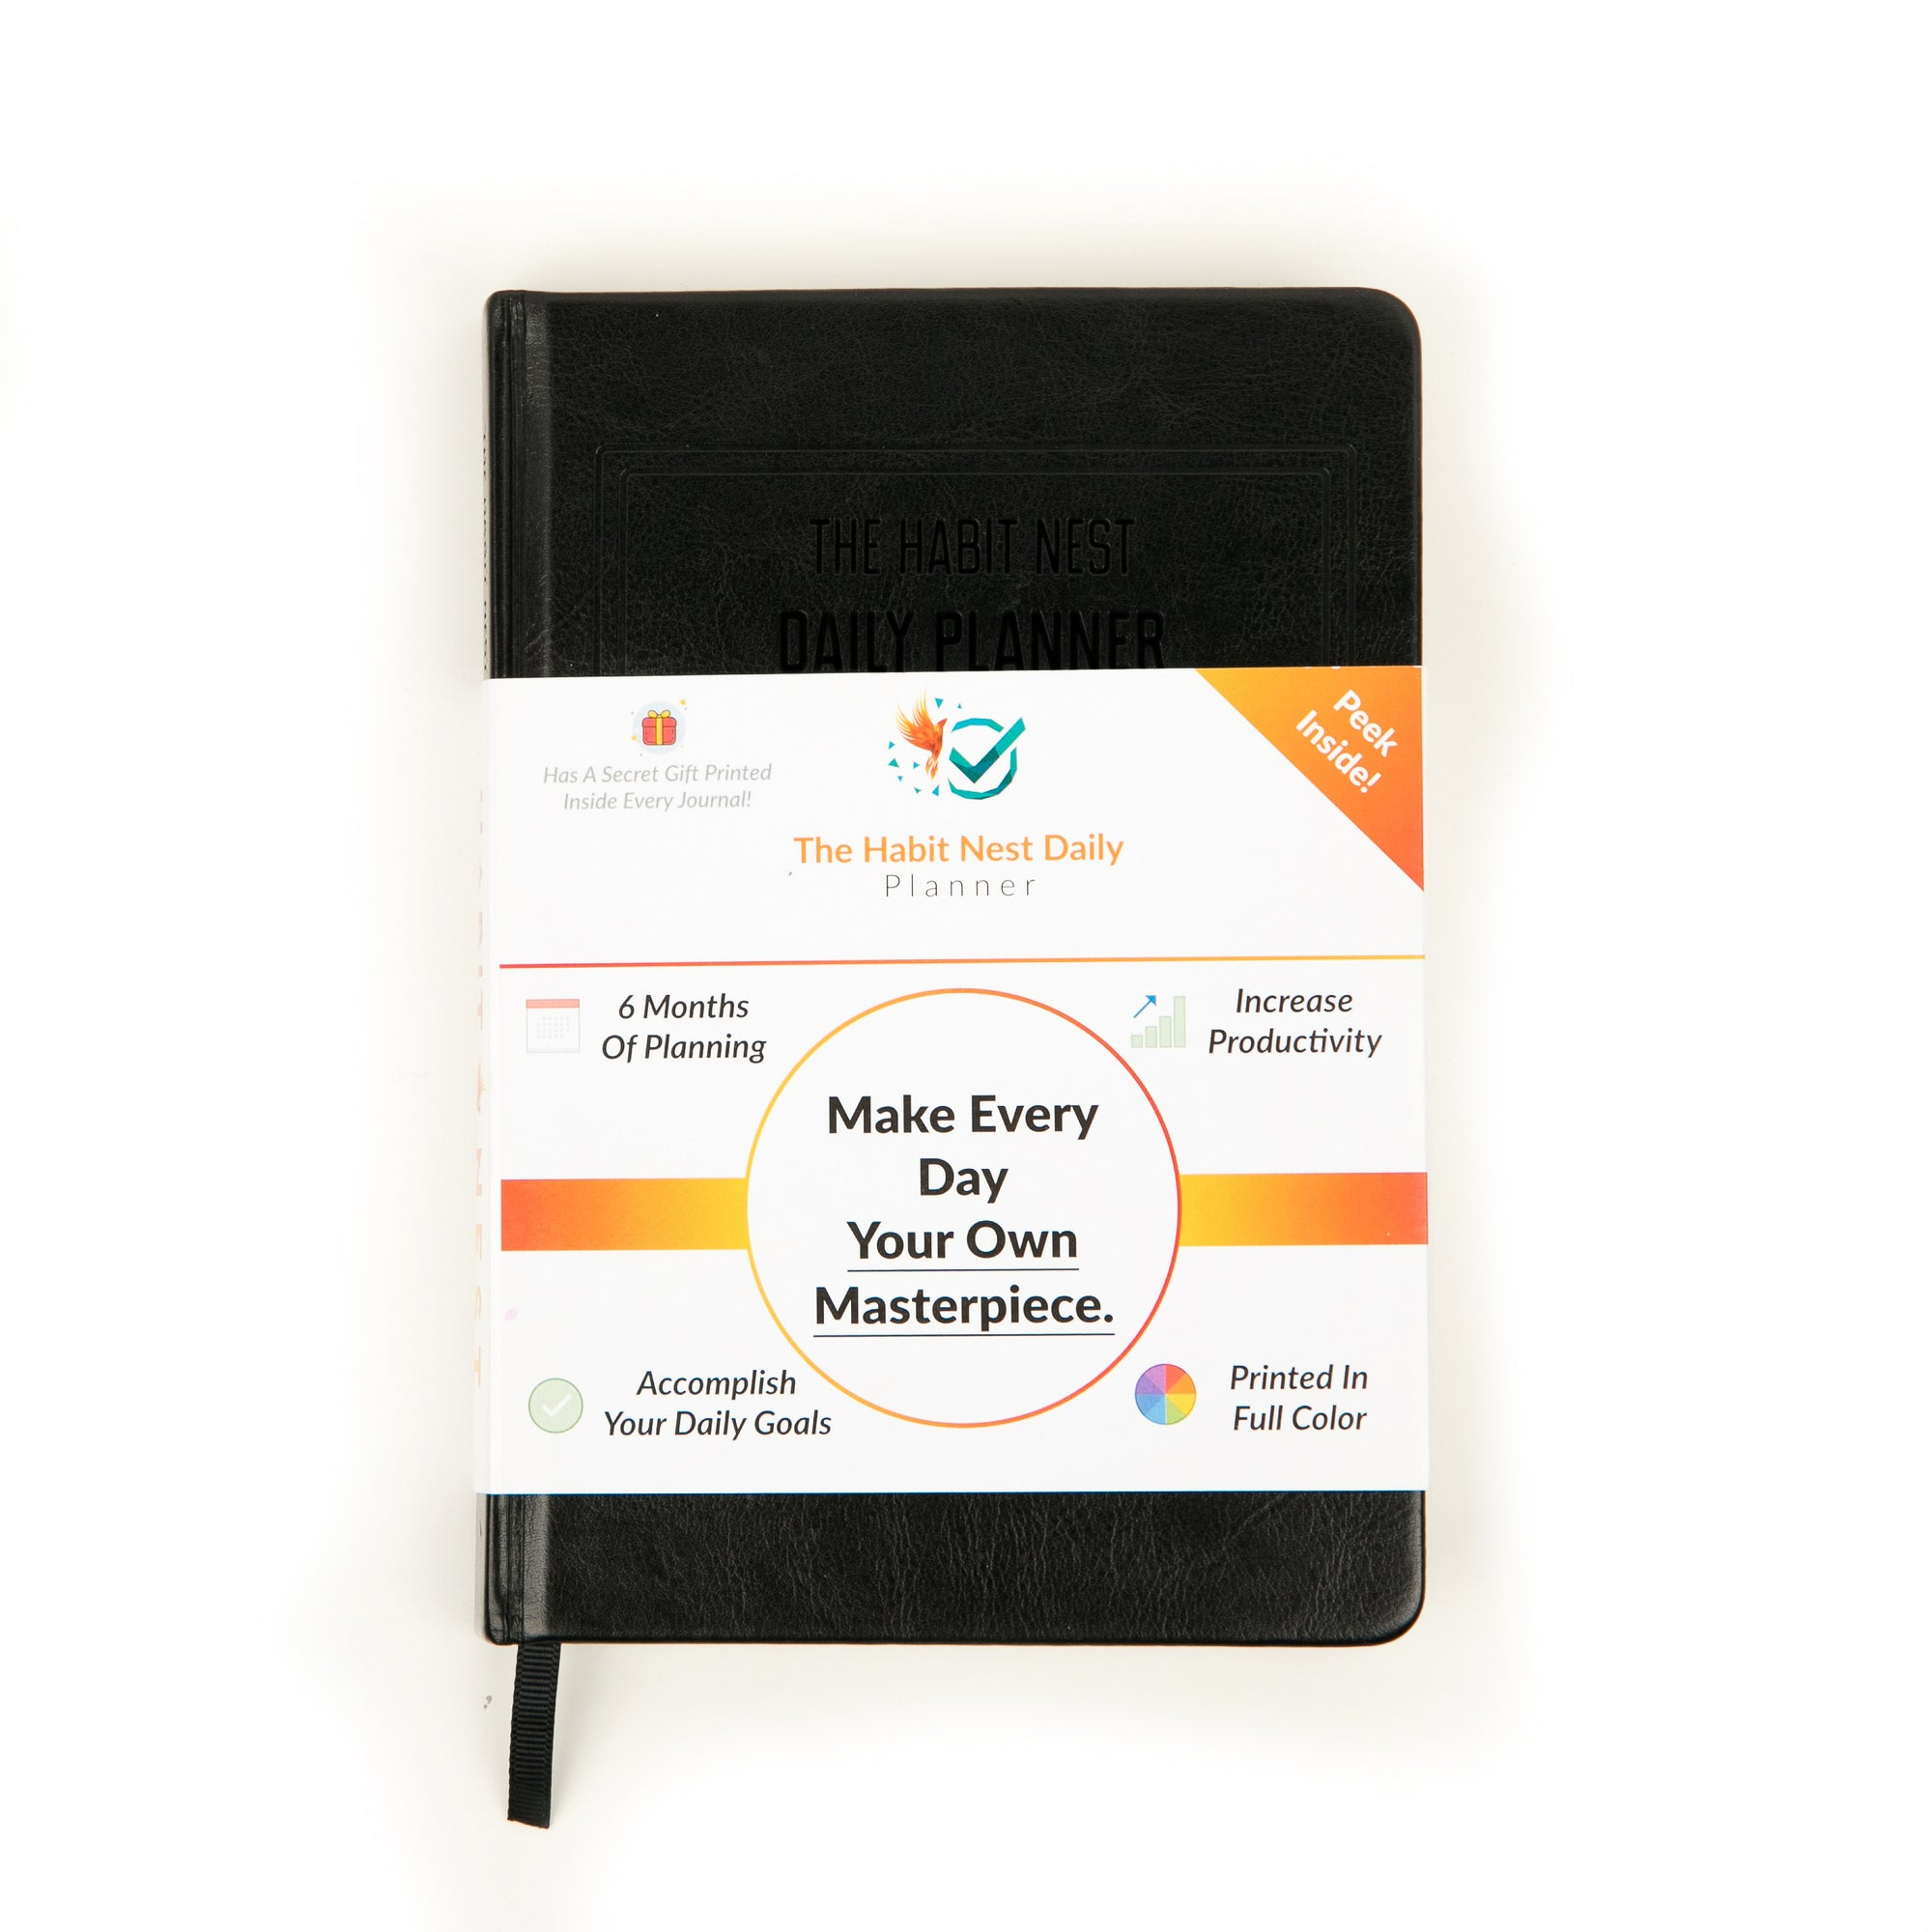 The Habit Nest Daily Planner